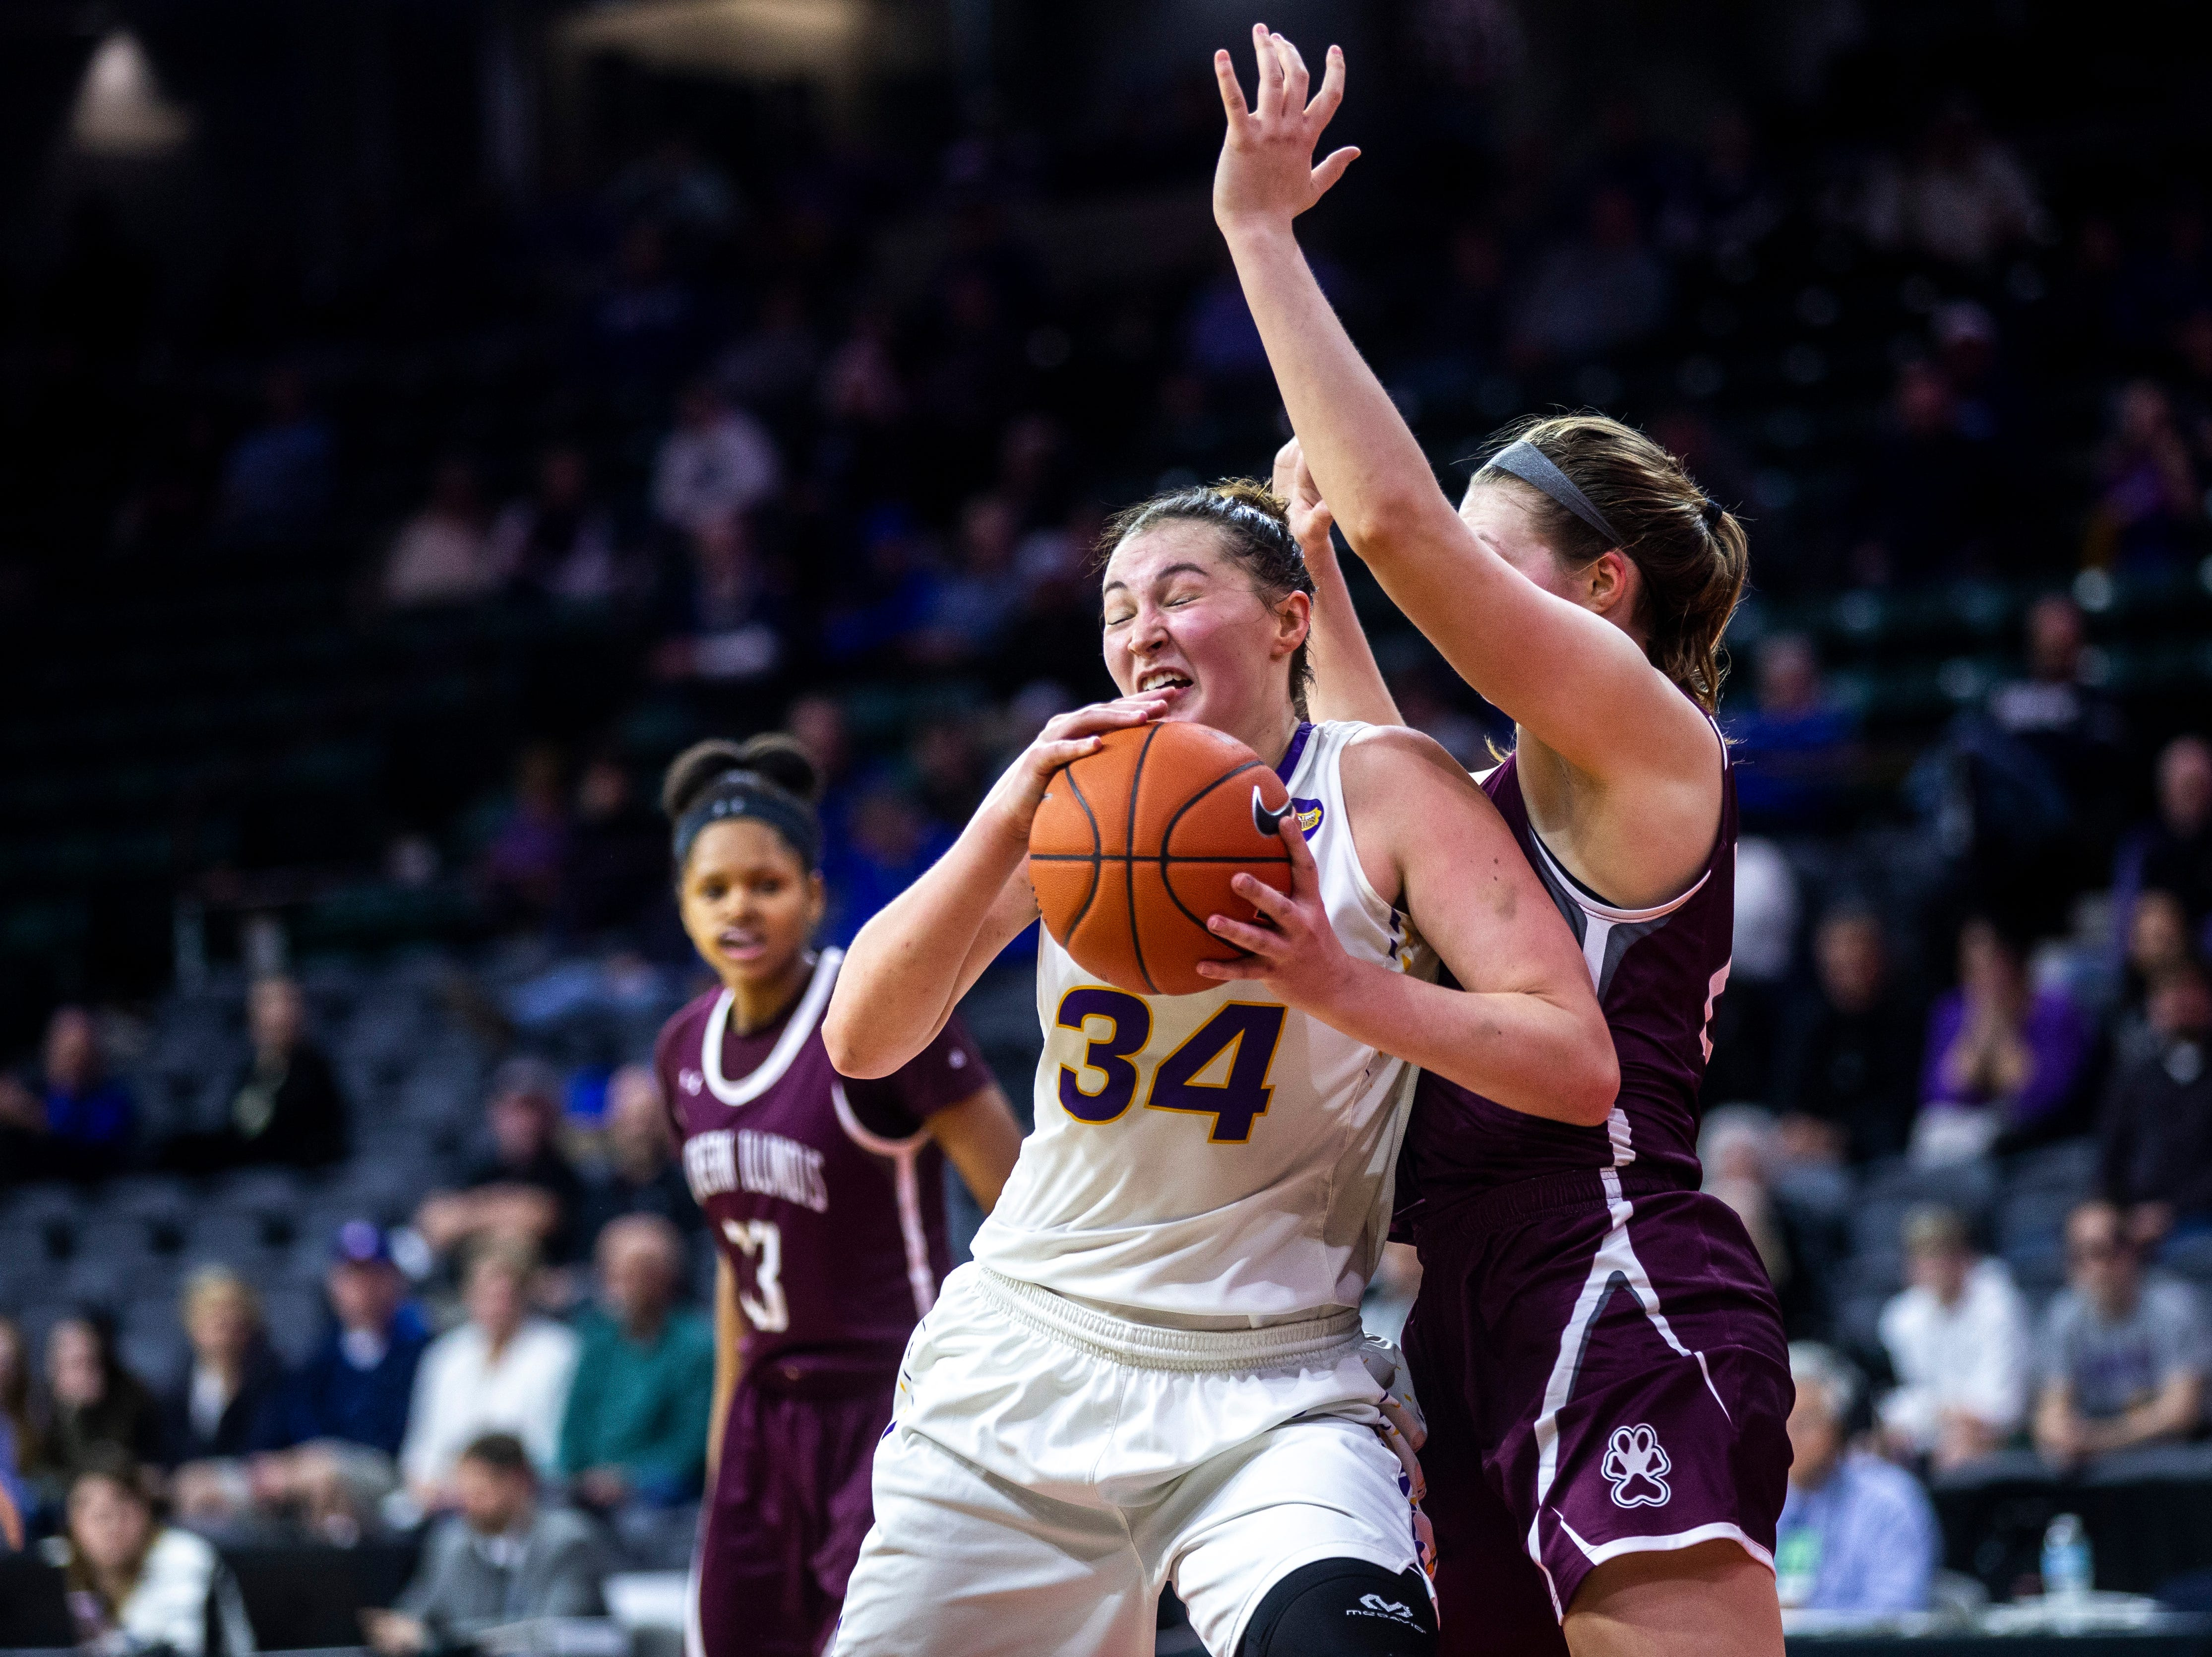 Northern Iowa forward Taylor Hagen (34) drives to the basket during a NCAA Missouri Valley Conference women's basketball quarterfinal tournament game, Friday, March 15, 2019, at the TaxSlayer Center in Moline, Illinois.